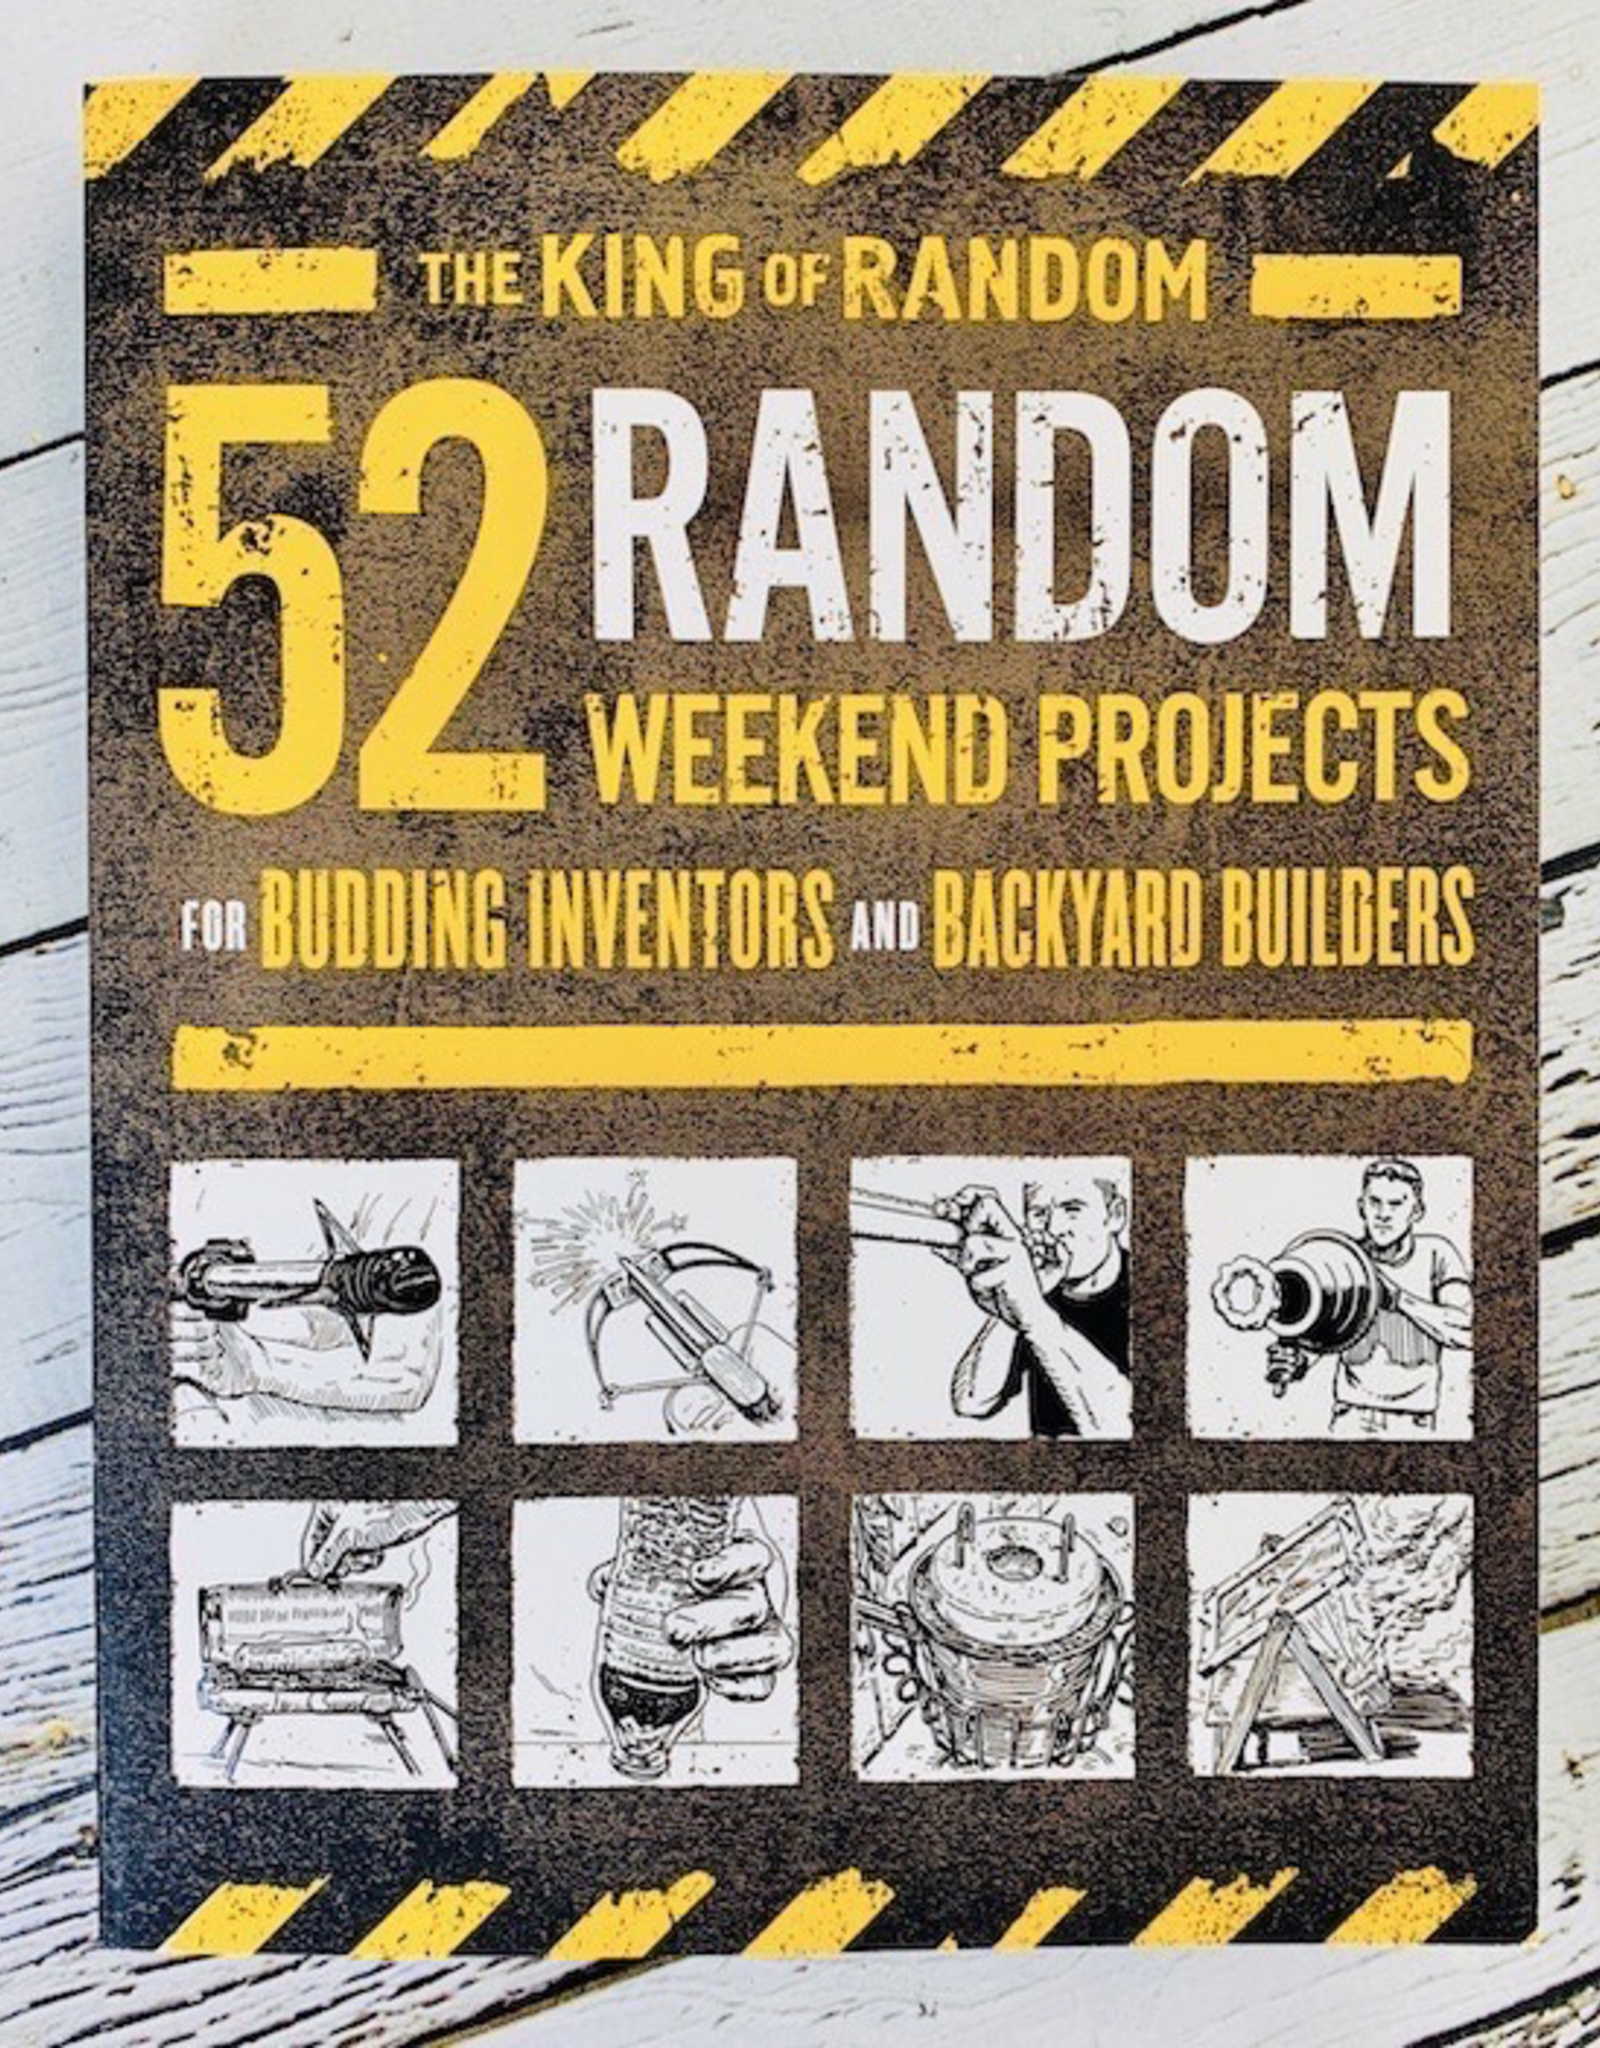 52 Random Weekend Projects for Tinkerers, Inventors and Backyard Builders